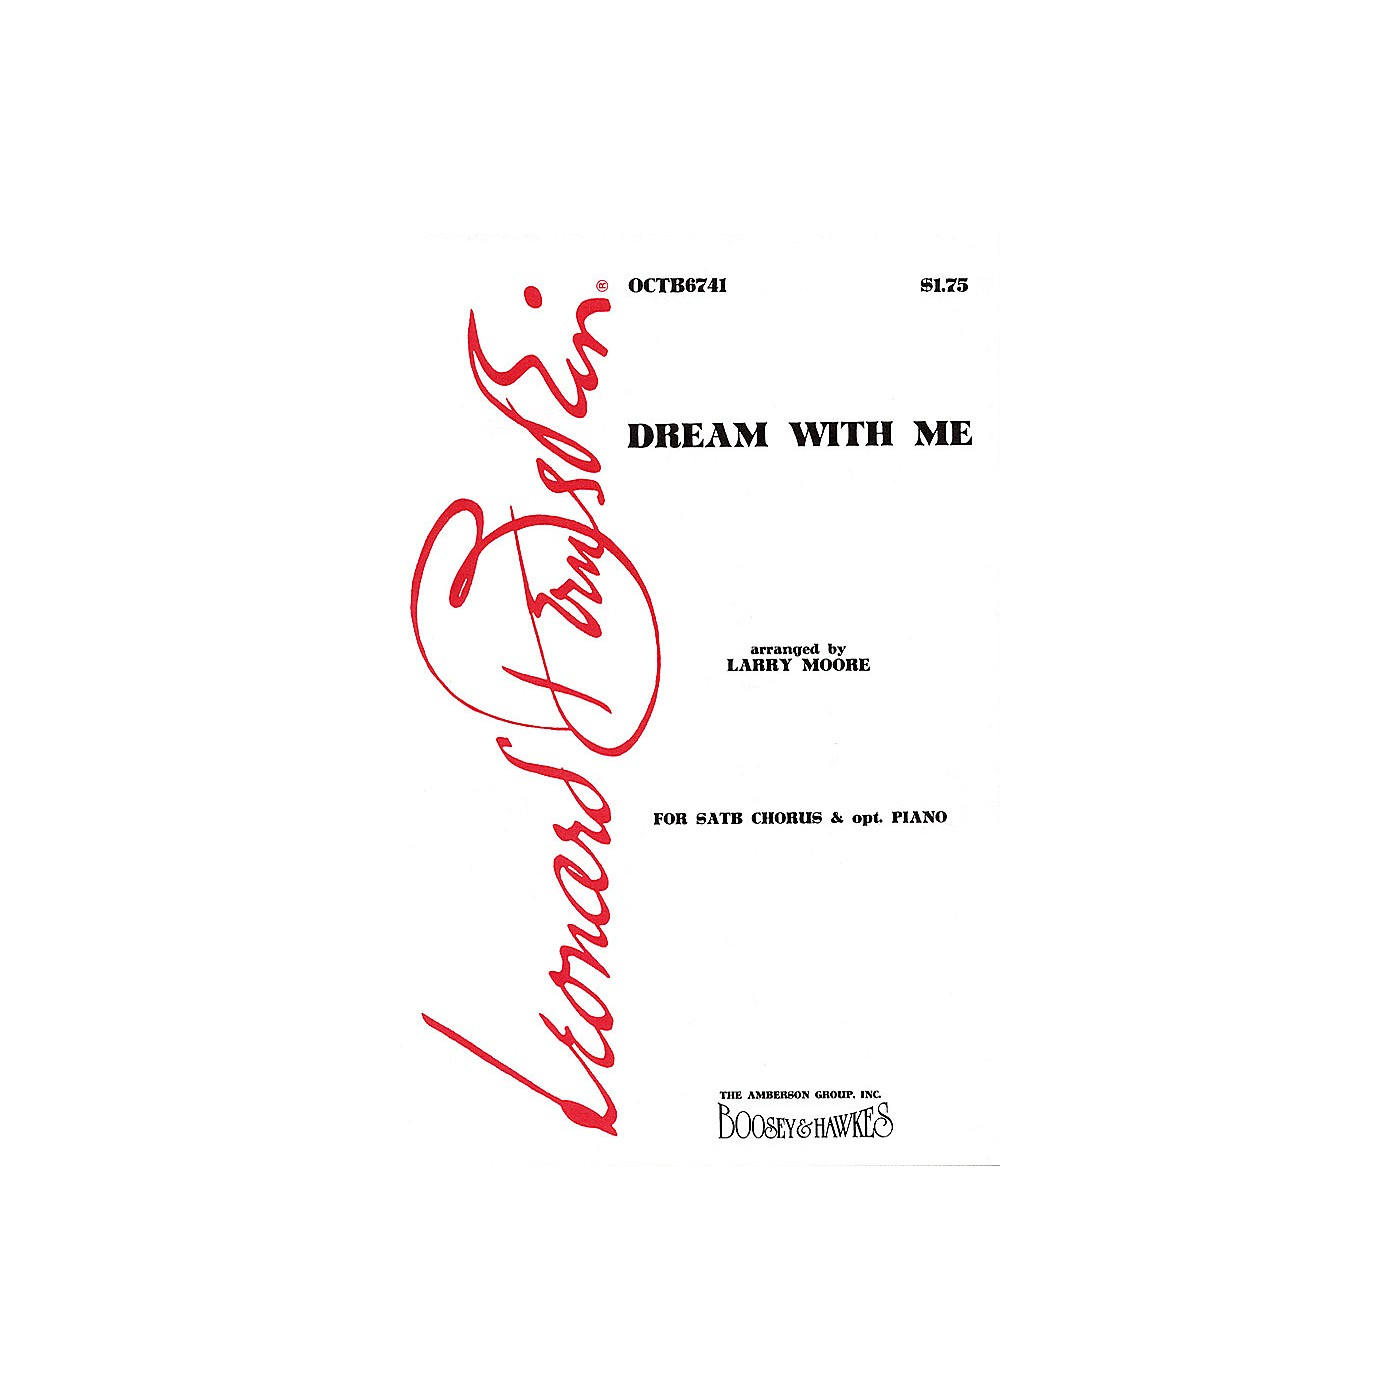 Hal Leonard Dream with Me (from Peter Pan) (SATB) SATB Arranged by Larry Moore thumbnail